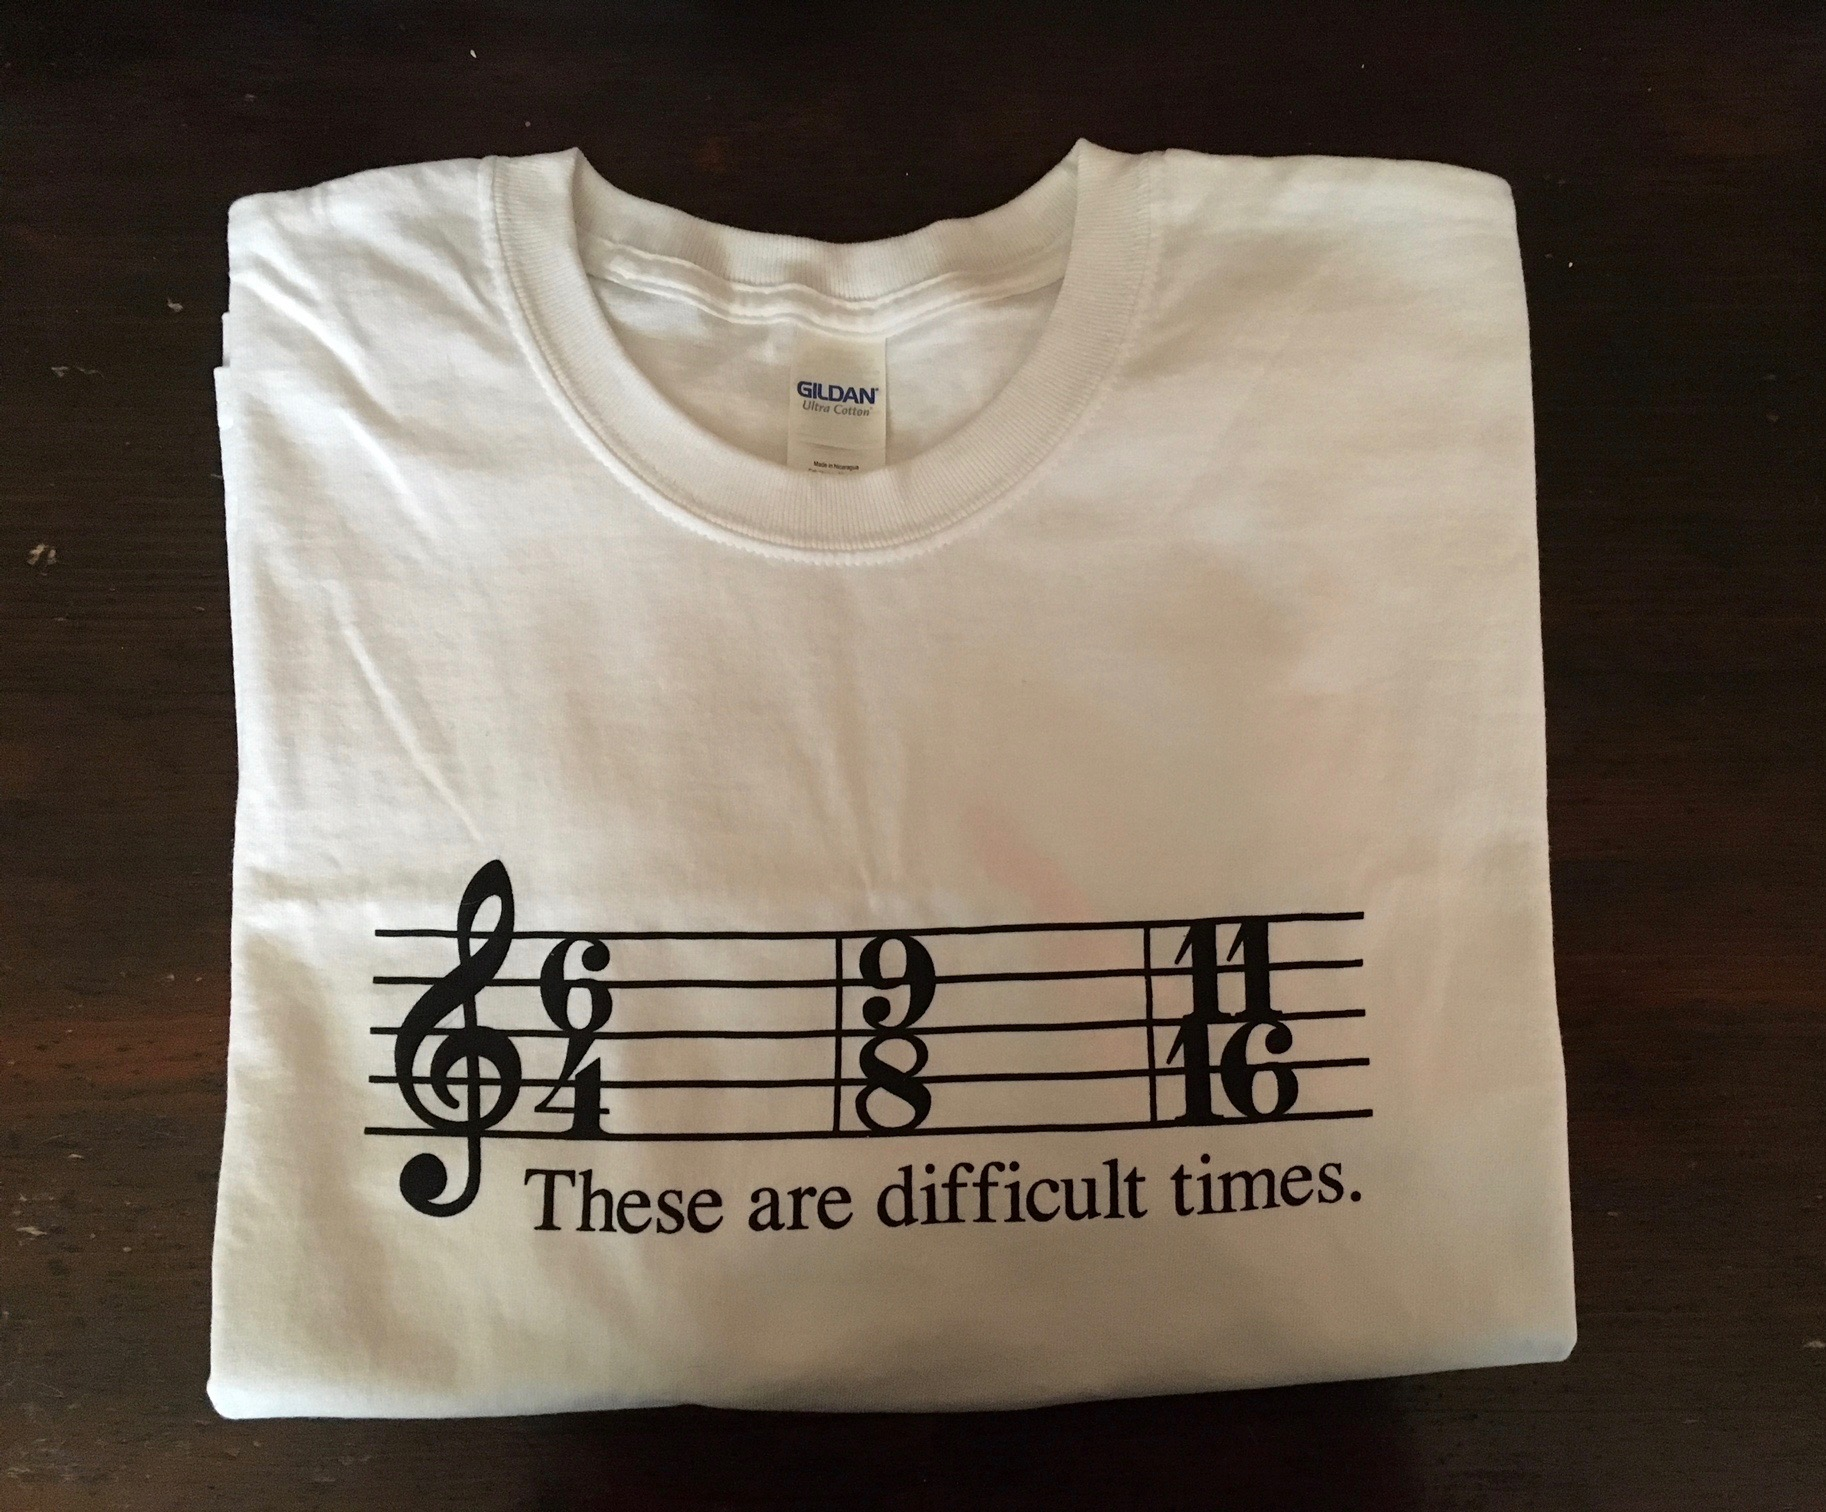 07508df93a3 Unisex Adult These are Difficult Times Shirts – White T-Shirt .